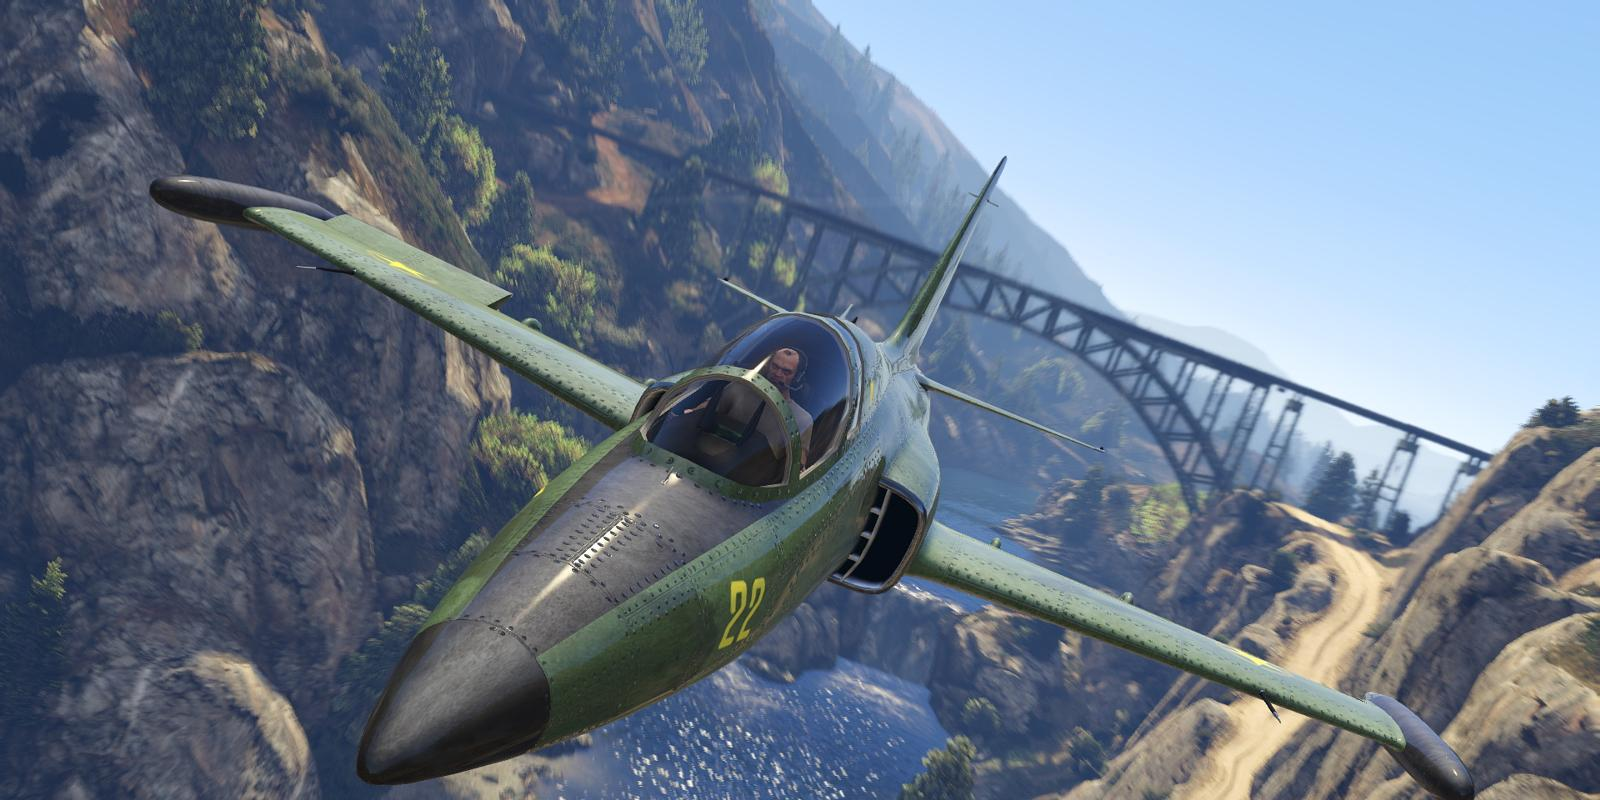 Grand Theft Auto Looks Almost Photorealistic With This Mod - Guy takes pictures showing just realistic grand theft auto v looks